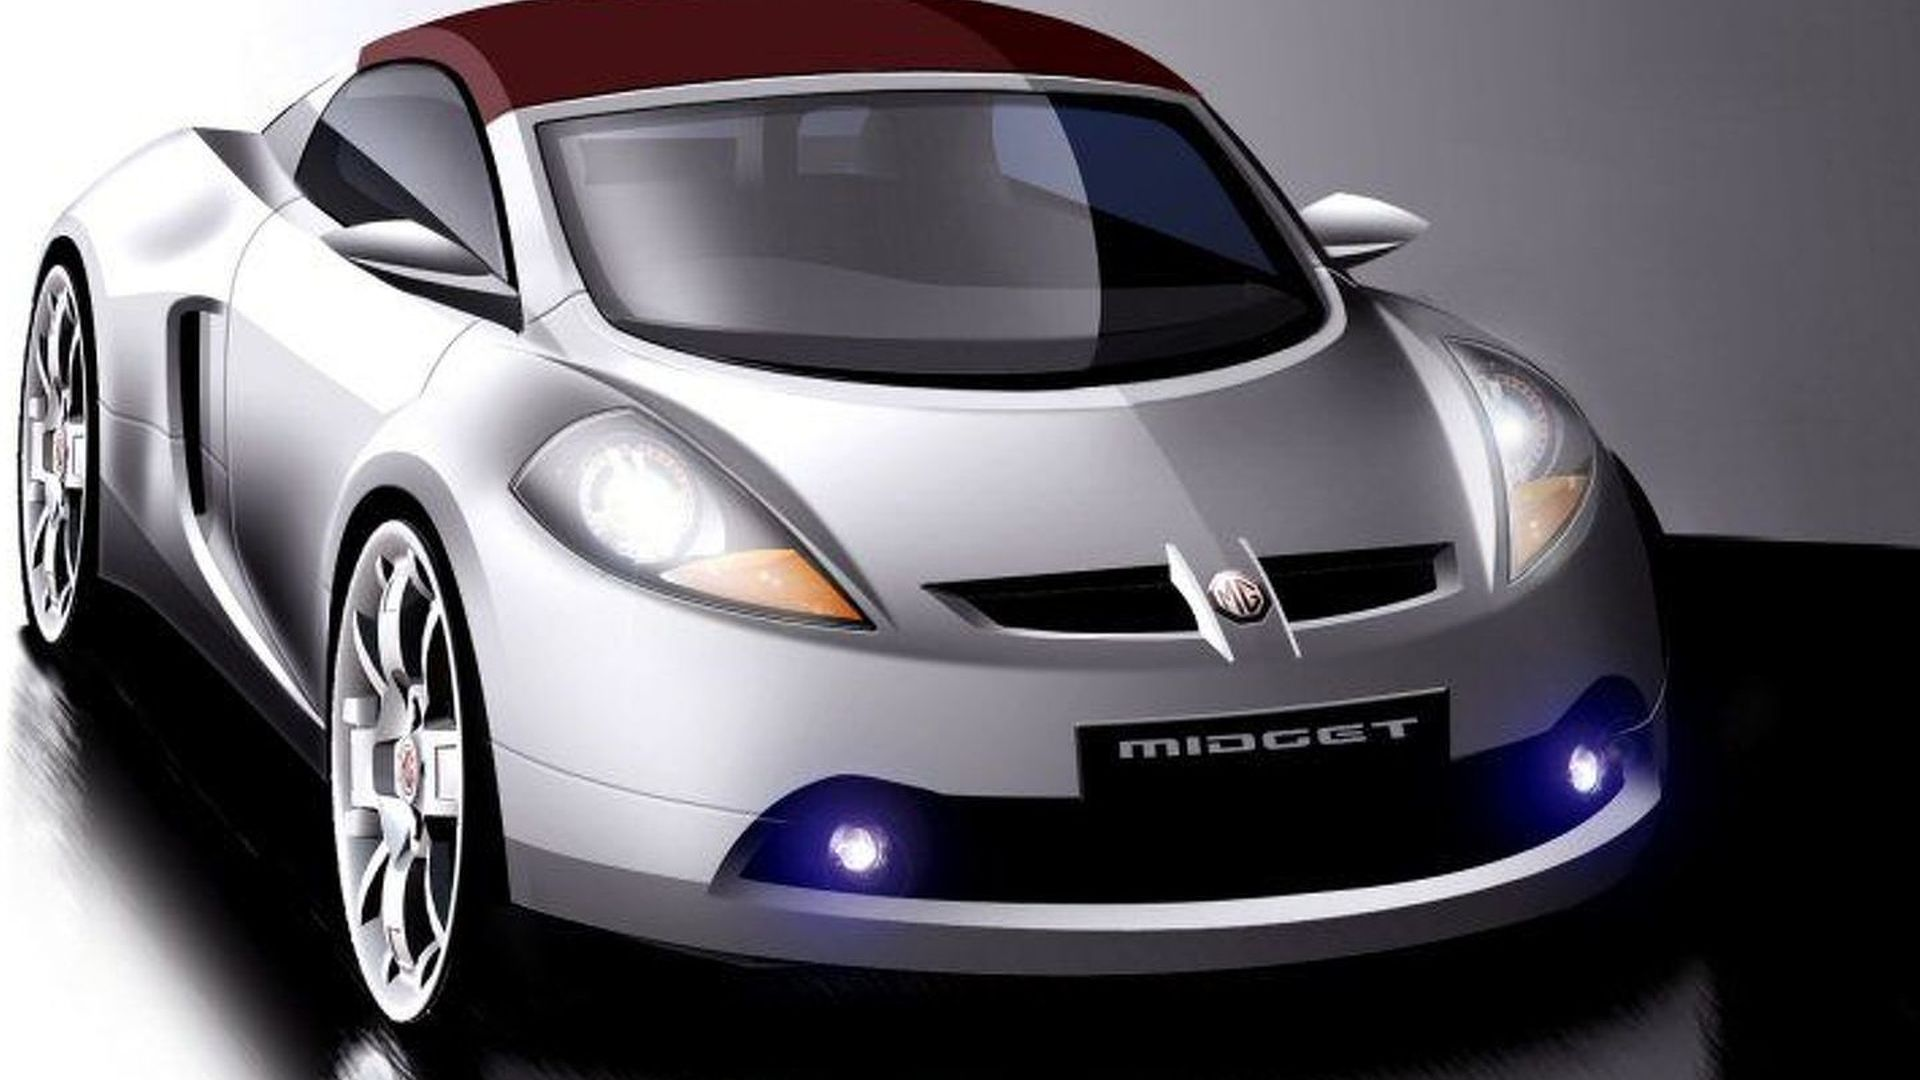 MG Roadster still in the works, could be five years off - report